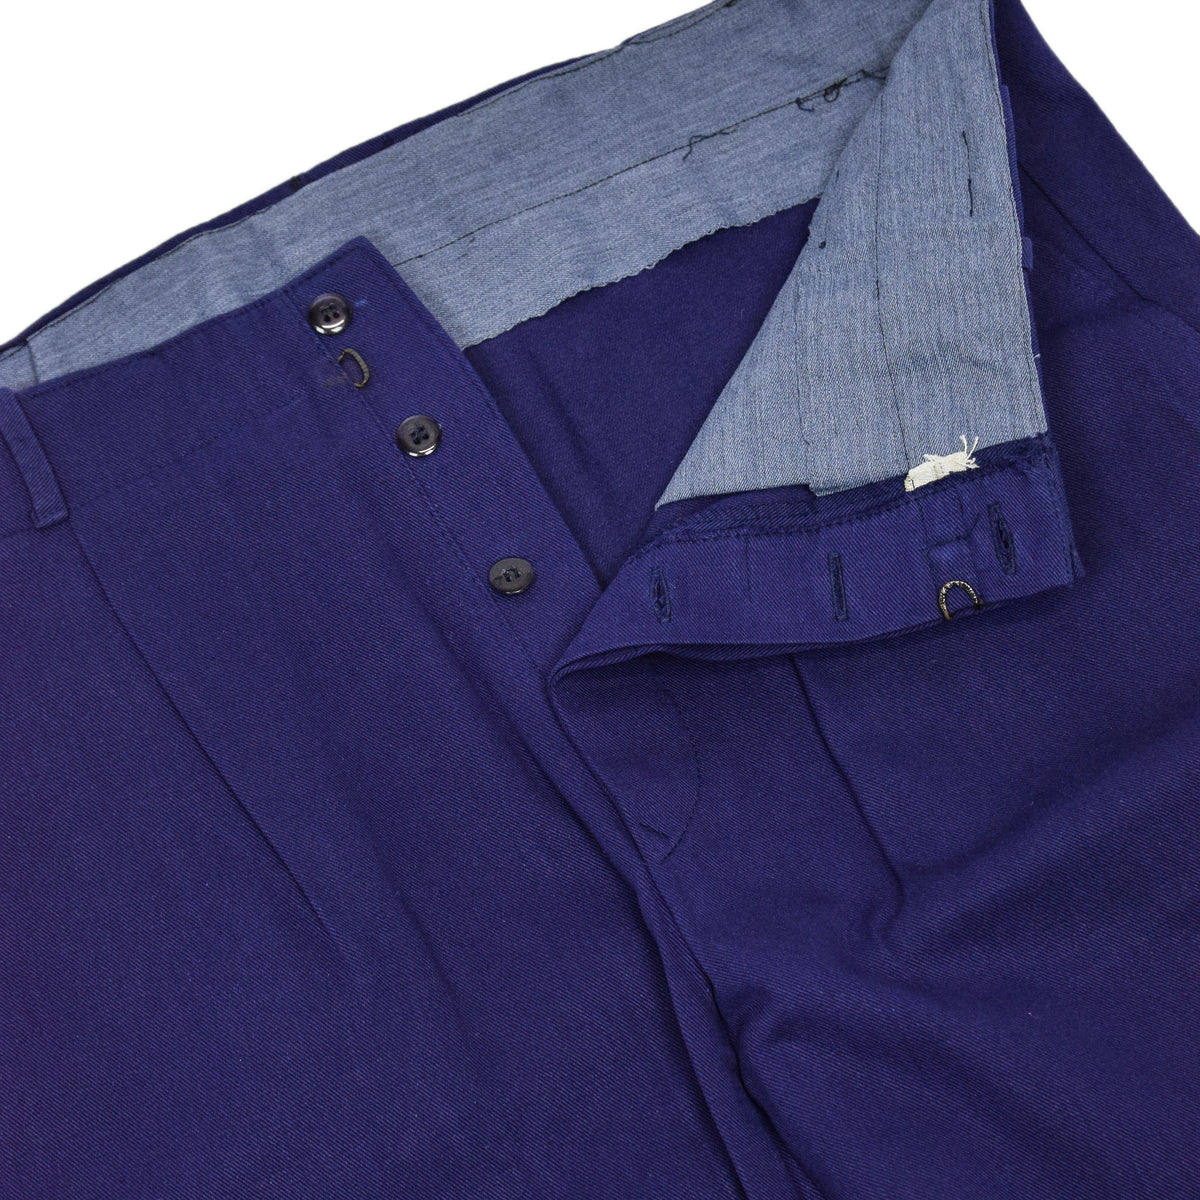 Vintage Workwear Blue French Style Work Utility Trousers Italy Made 36 W 28 L hem